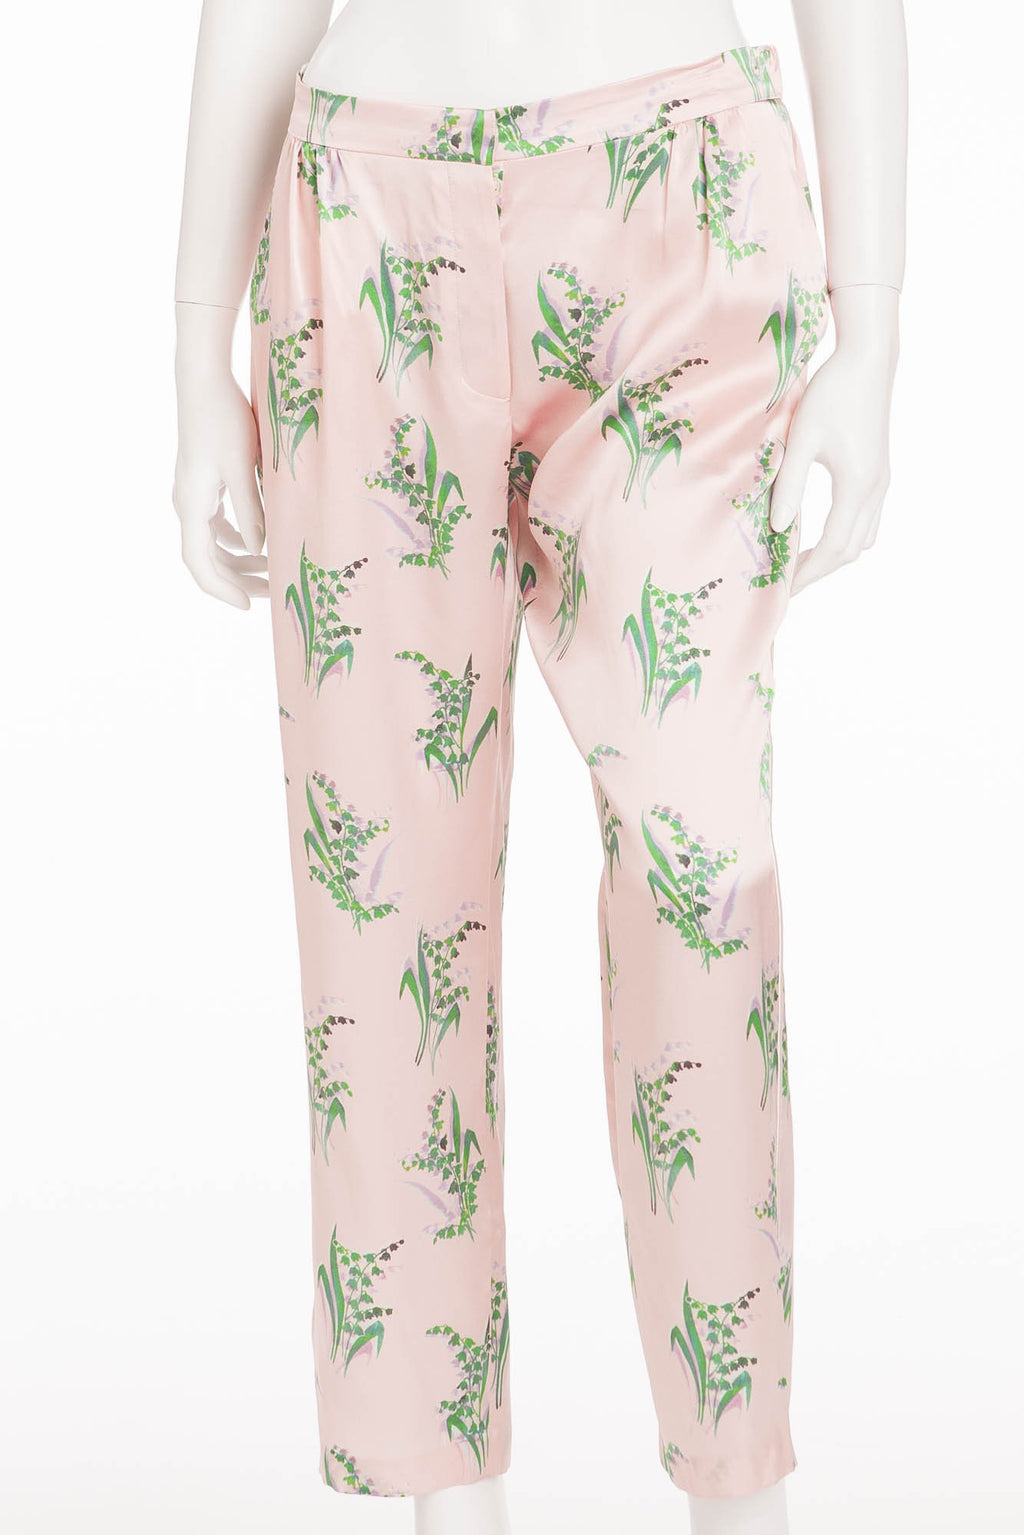 Nina Ricci - Pink Silk Pants with Lily of the Valley Print - FR 40